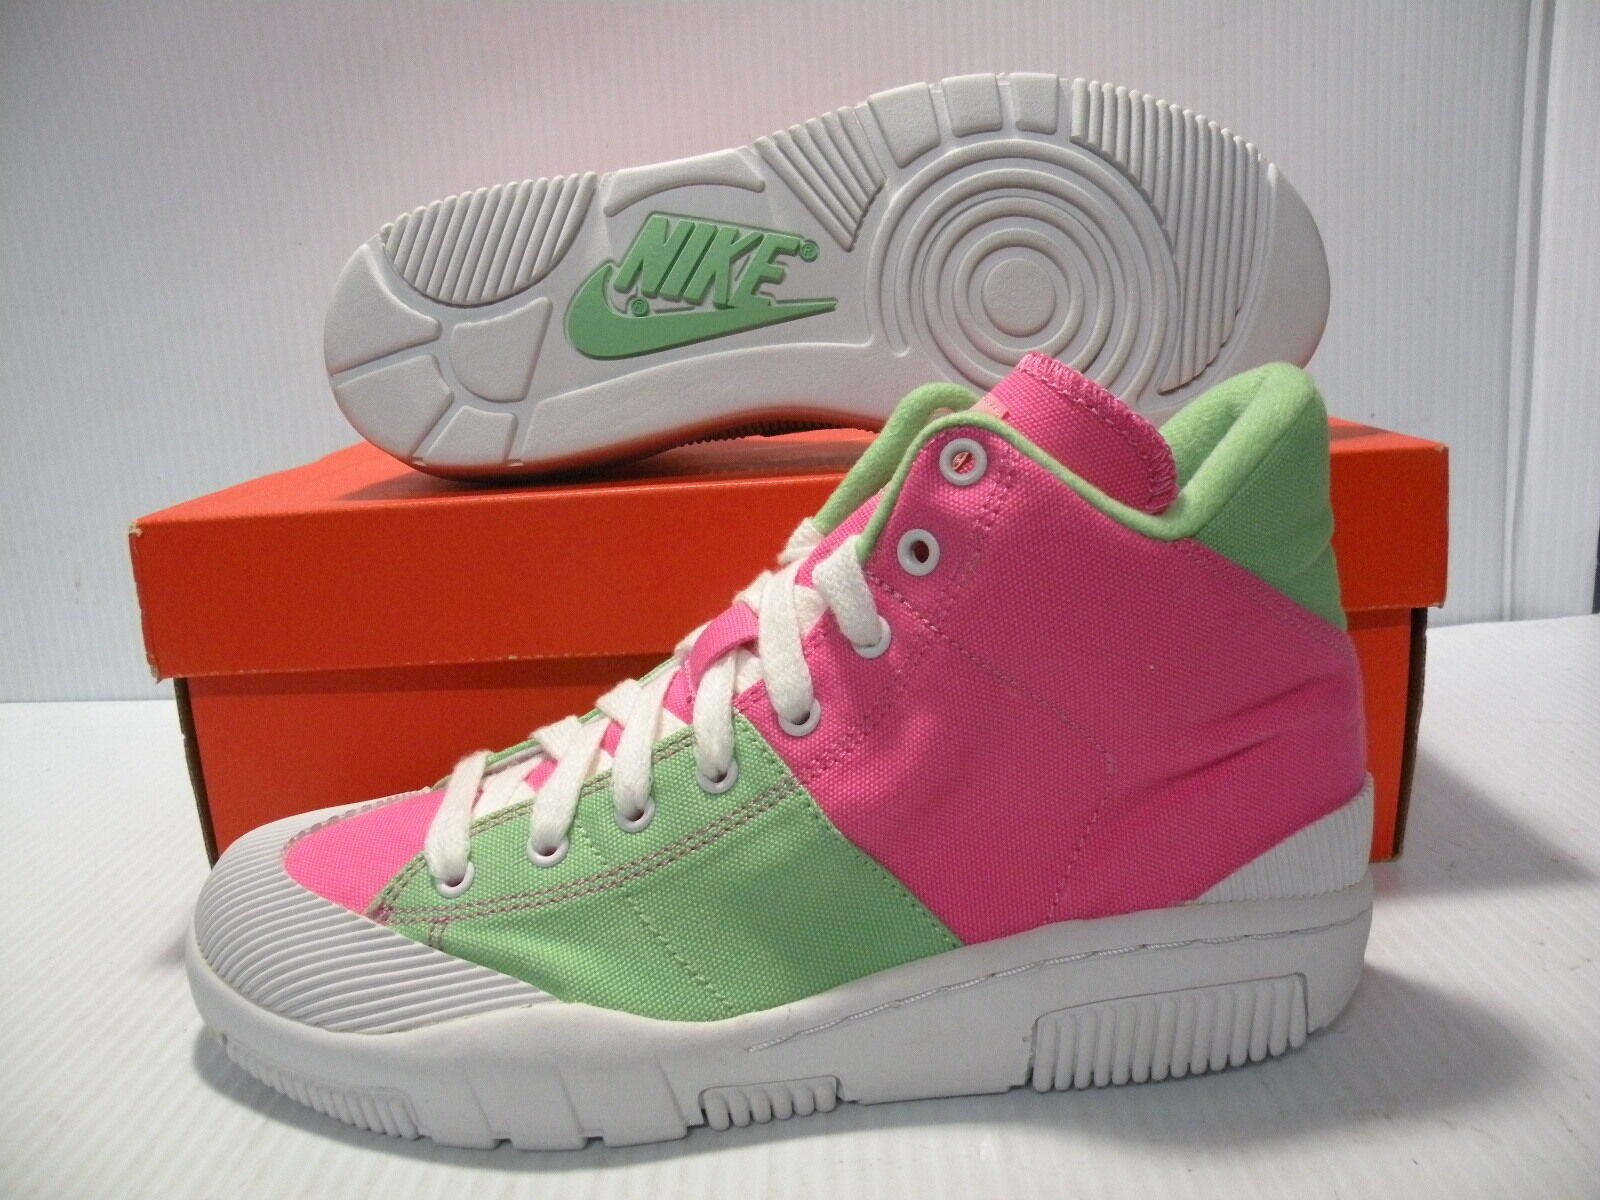 NIKE OUTBREAK HIGH CANVAS SNEAKER WOMEN SHOES PINK/GREEN 318635-611 SIZE 5.5 NEW